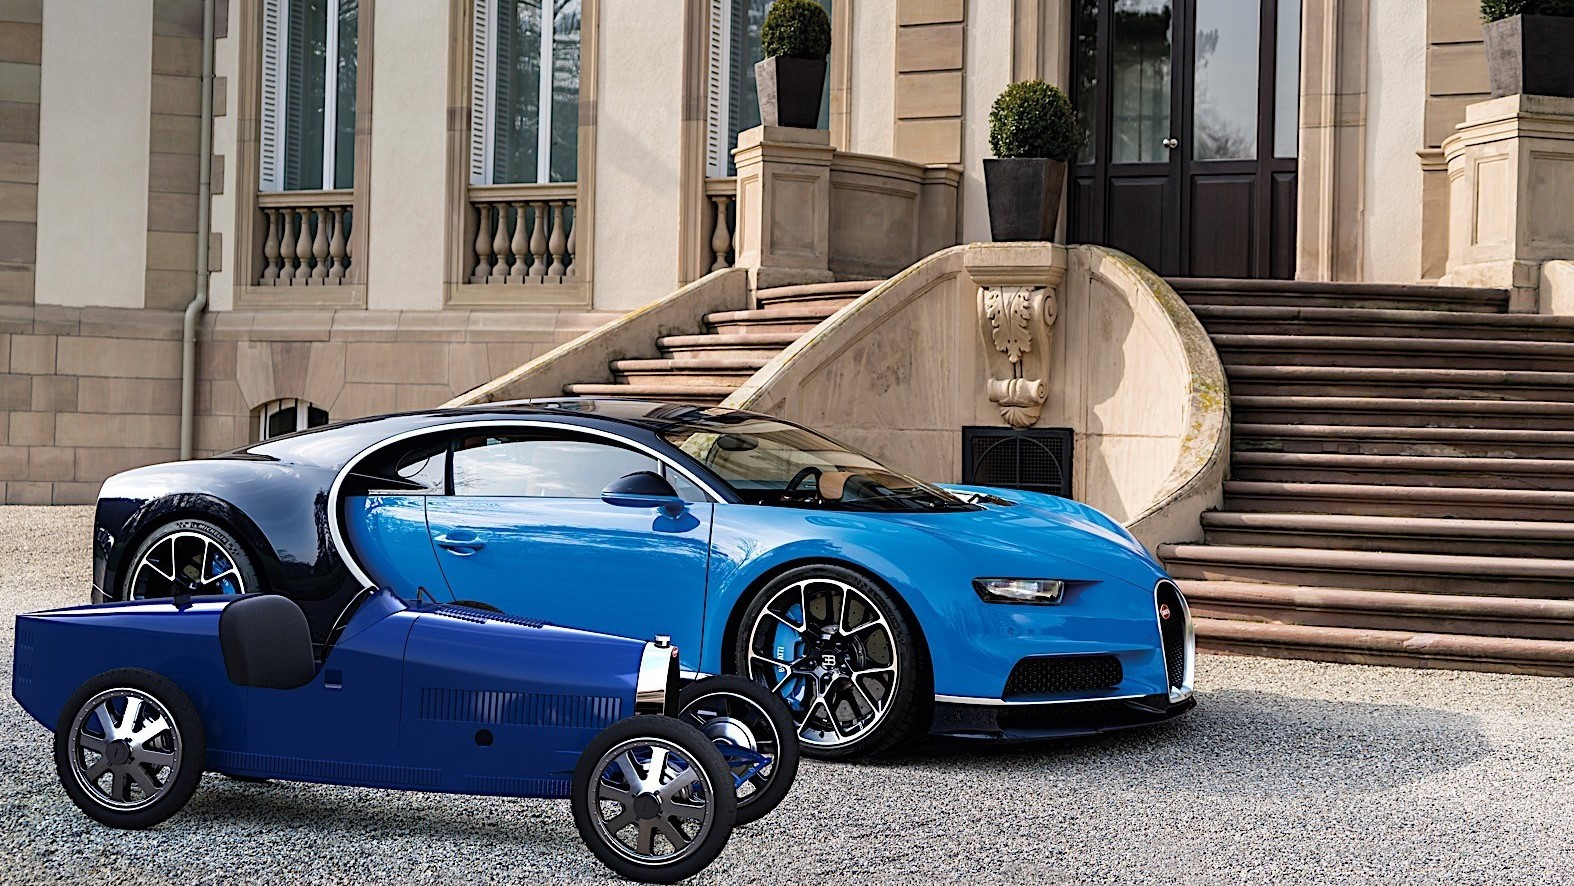 bugatti-baby-ii-a-replica-of-the-type-35-is-a-eur-30000-car-for-kids-and-dads_7